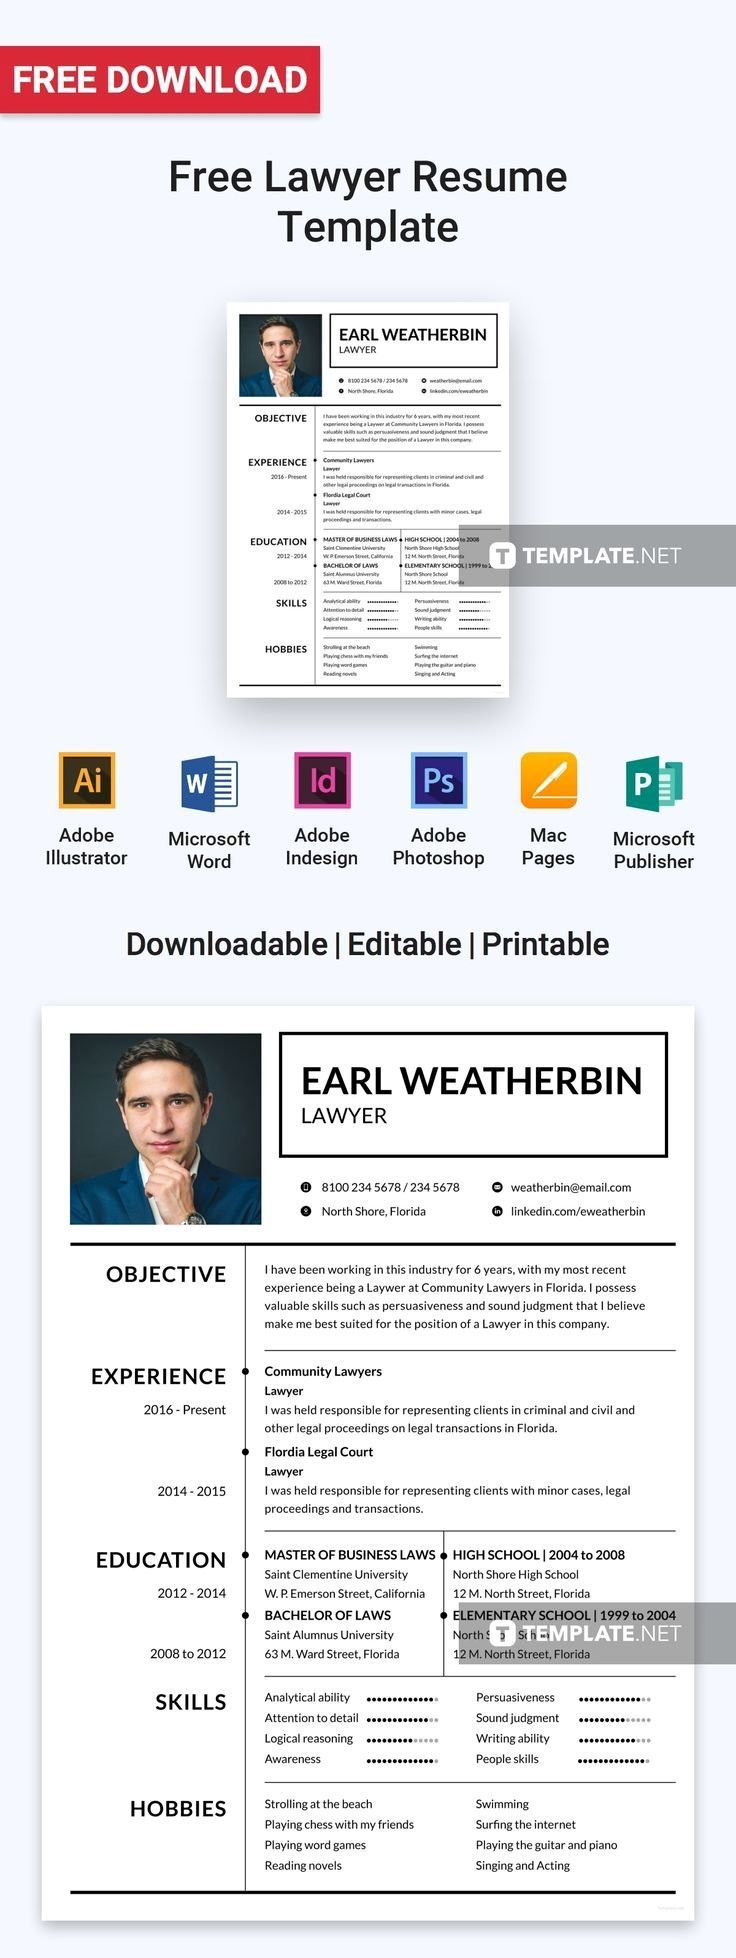 A clean and effective resume that is designed for those